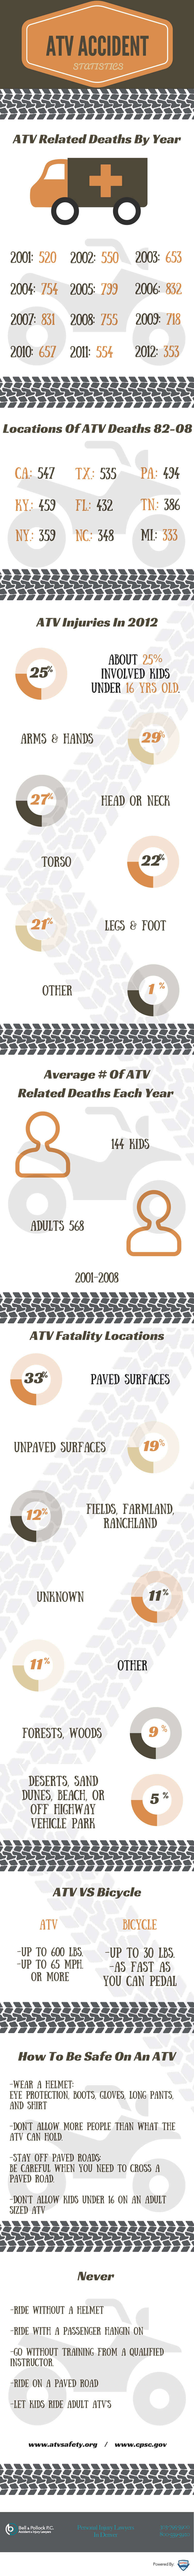 Deadly ATV Accidents: The Causes & Impacts [Infographic]